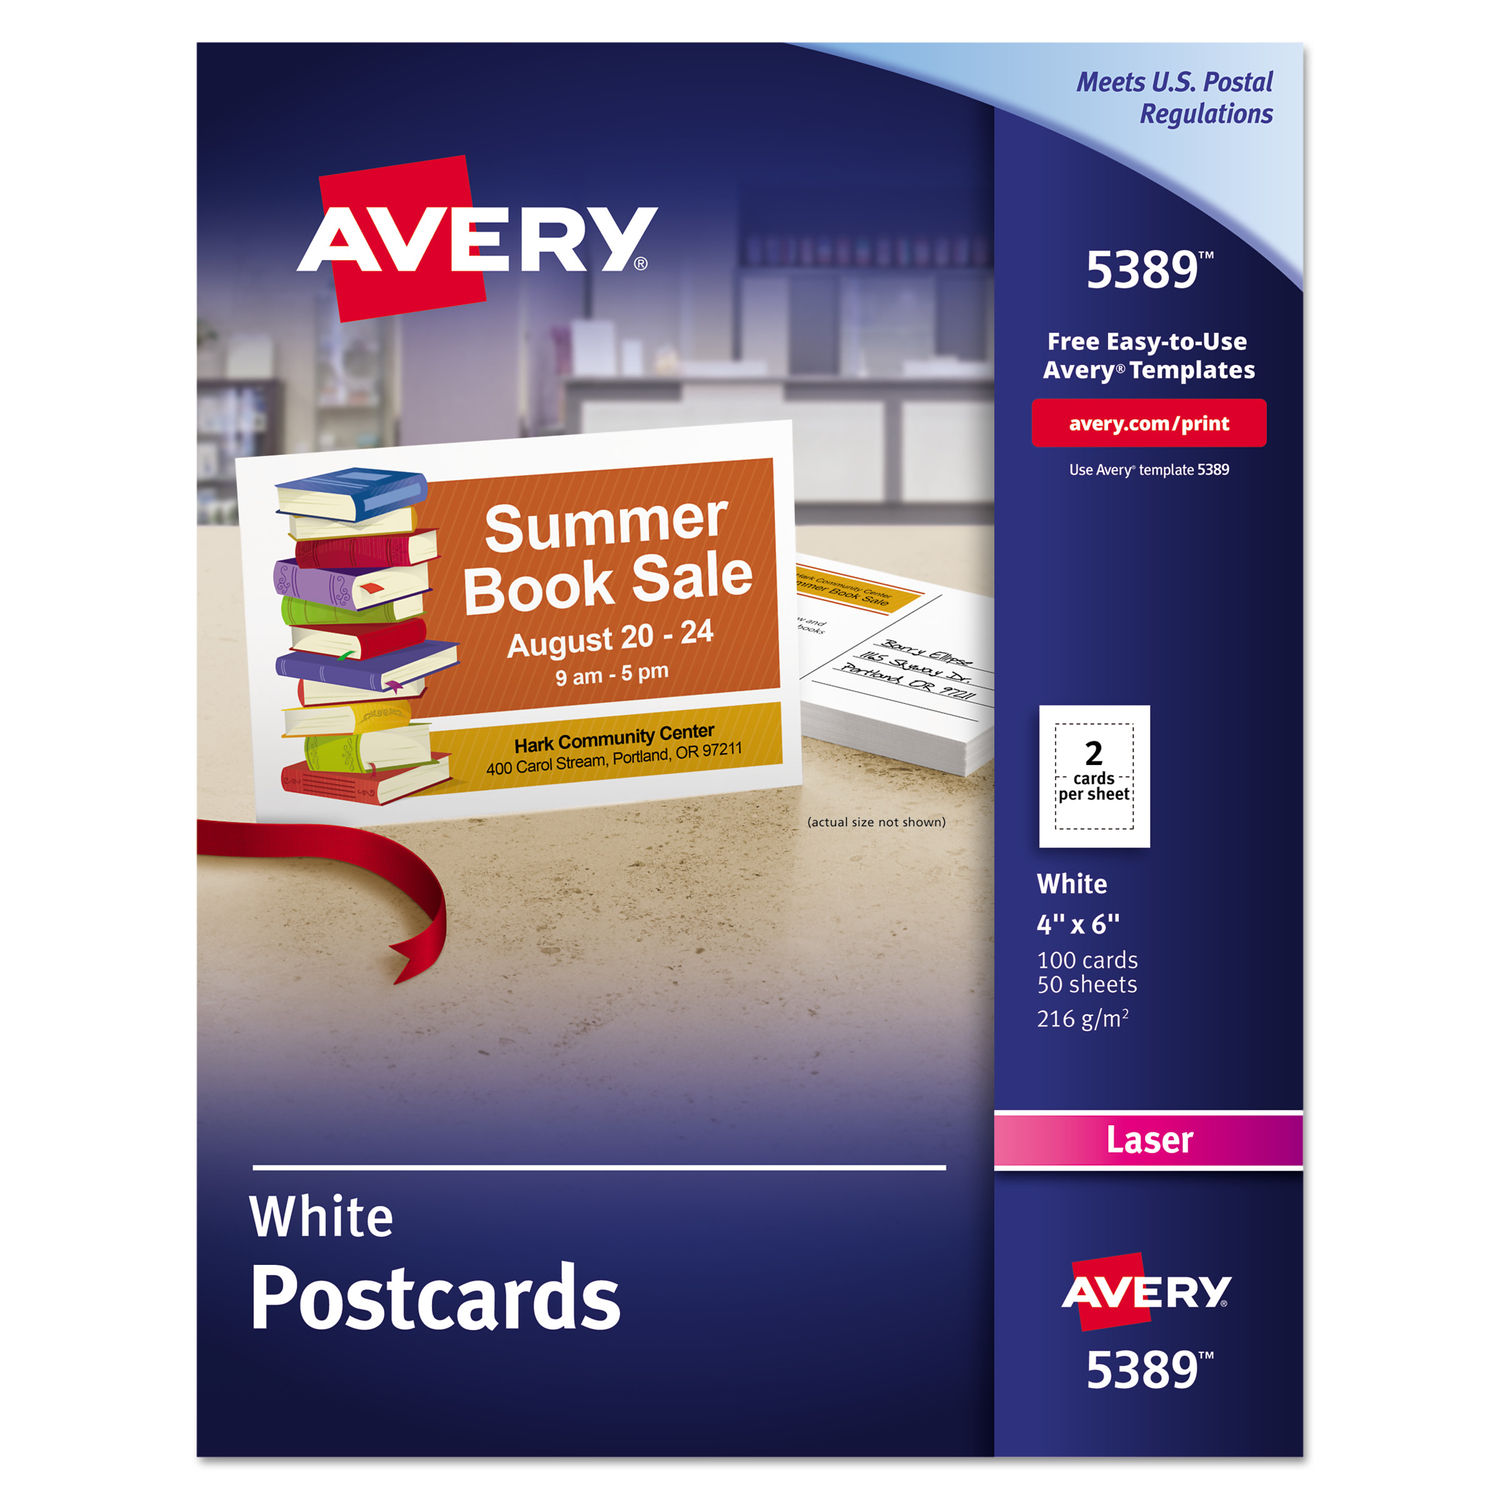 templates take out box postcards 4 per sheet wide avery.html